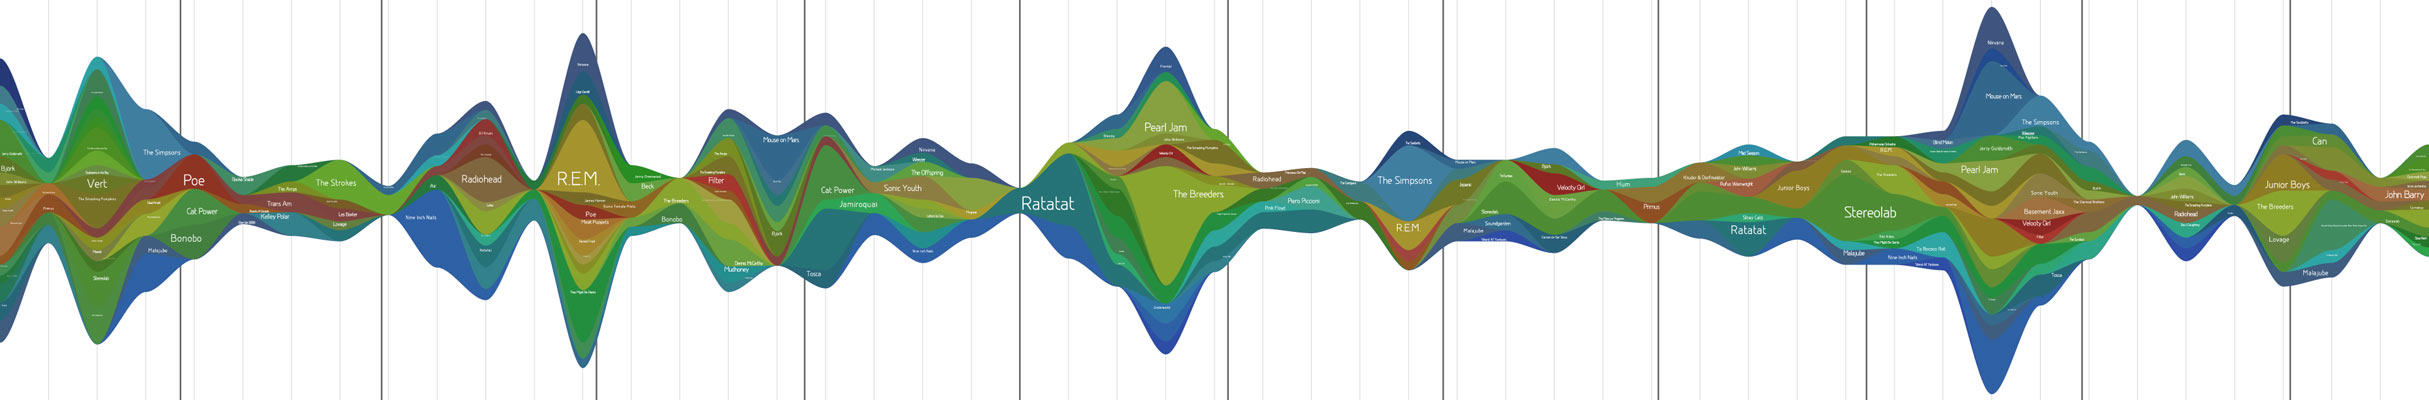 2008 music activity graph generated by LastGraph